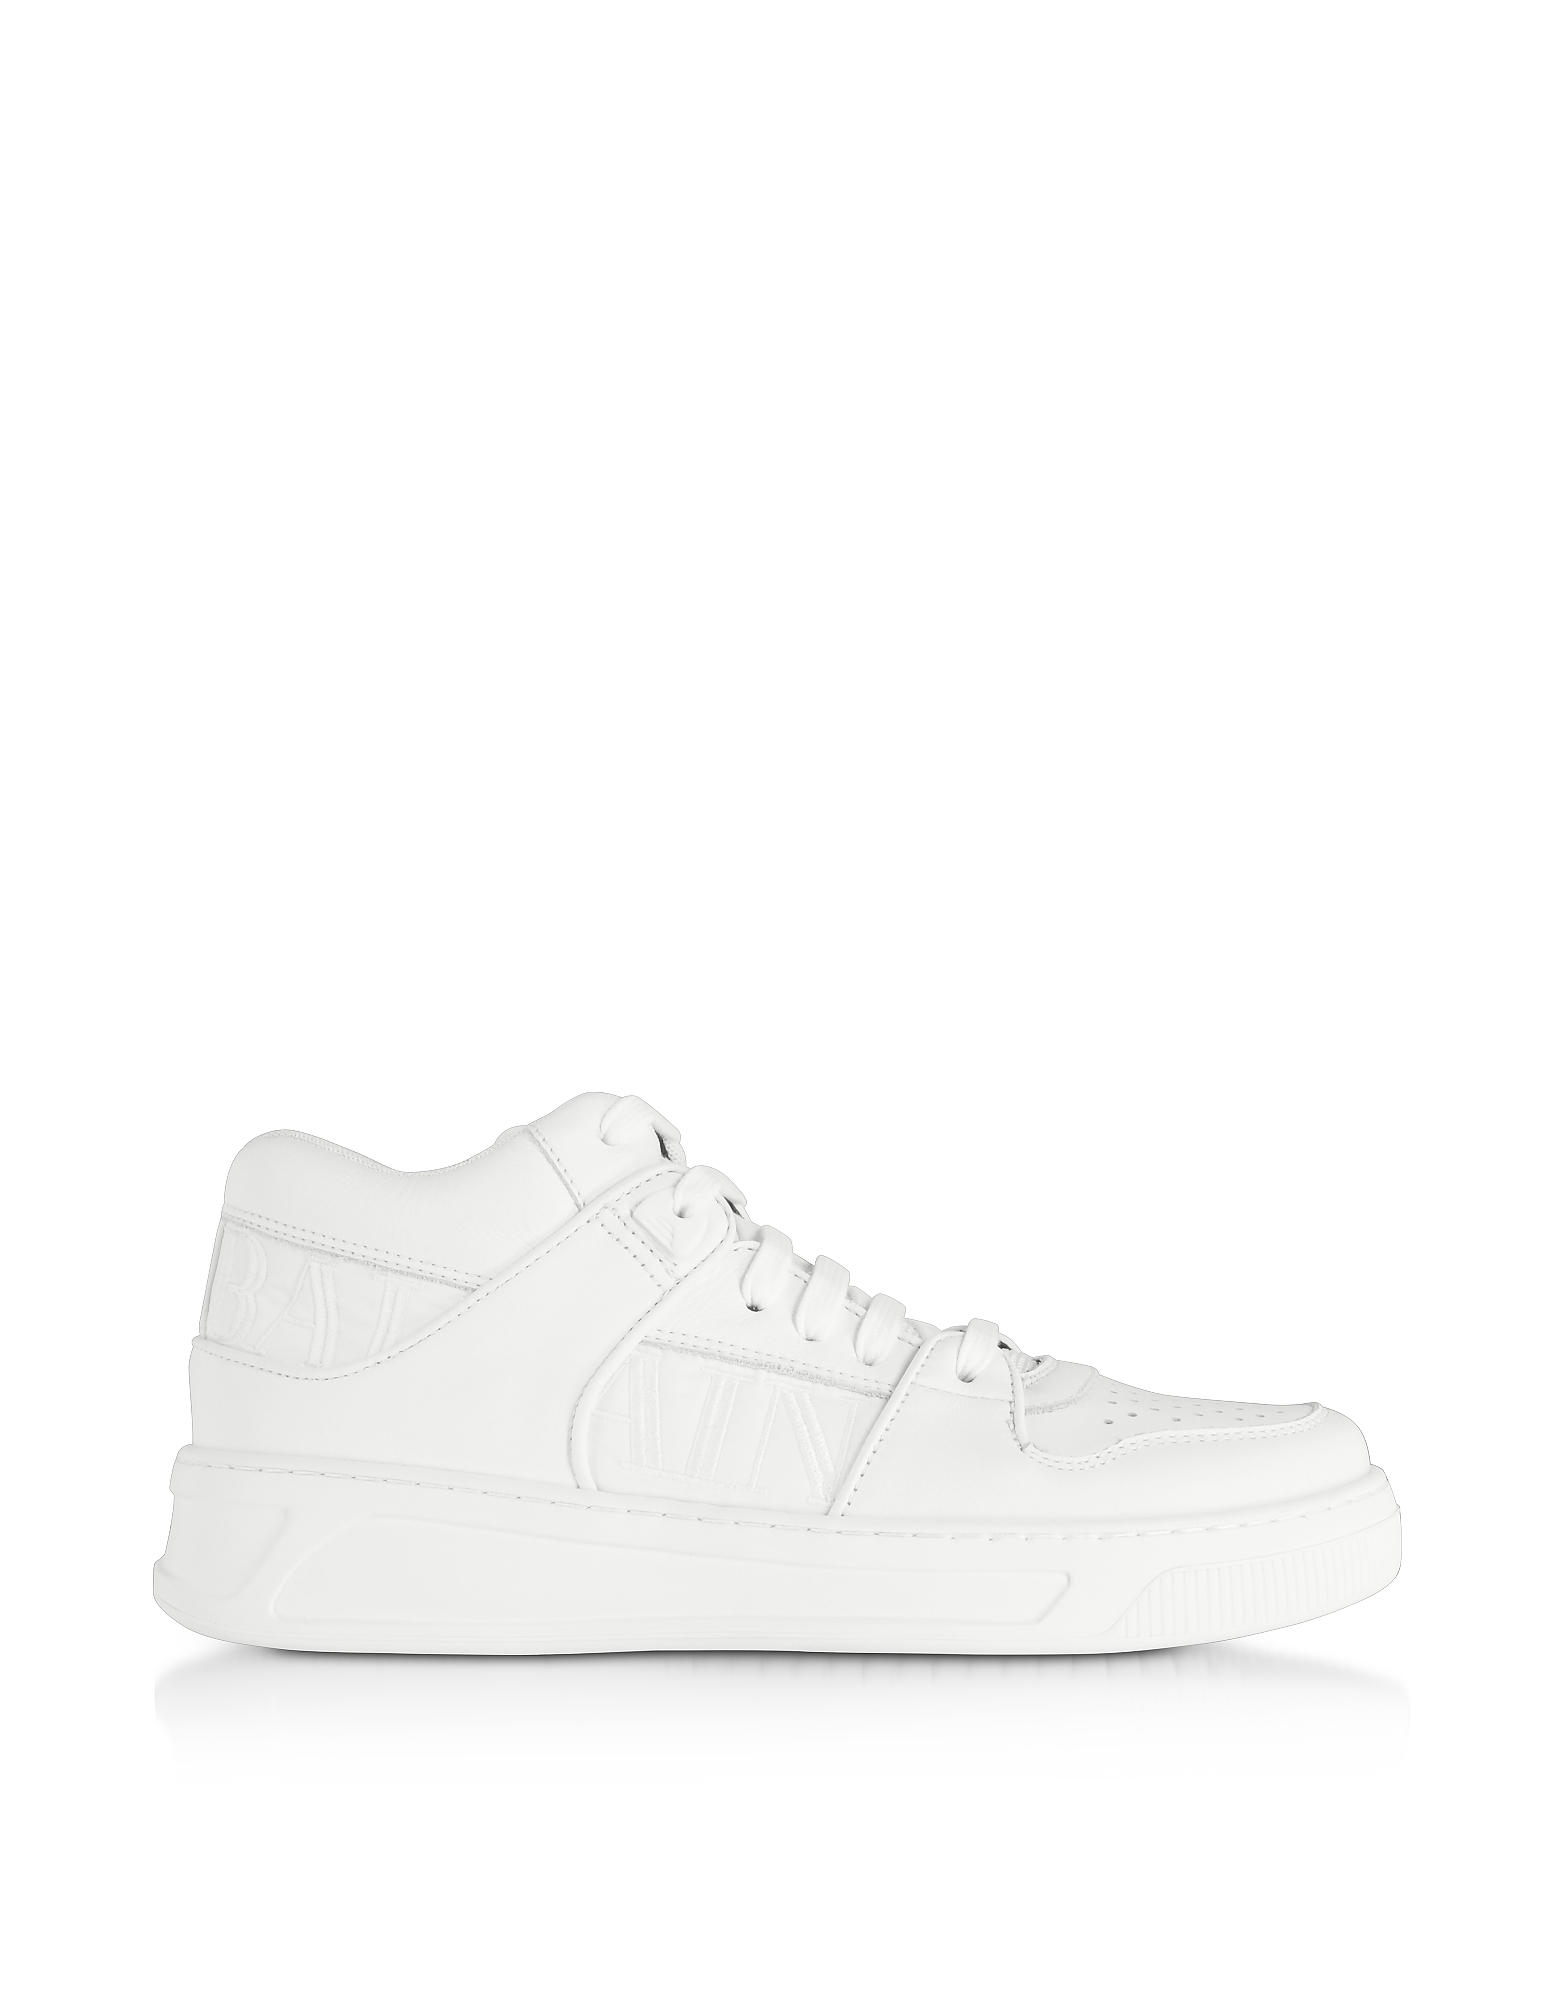 Optic White Kane Leather Low Top Sneakers